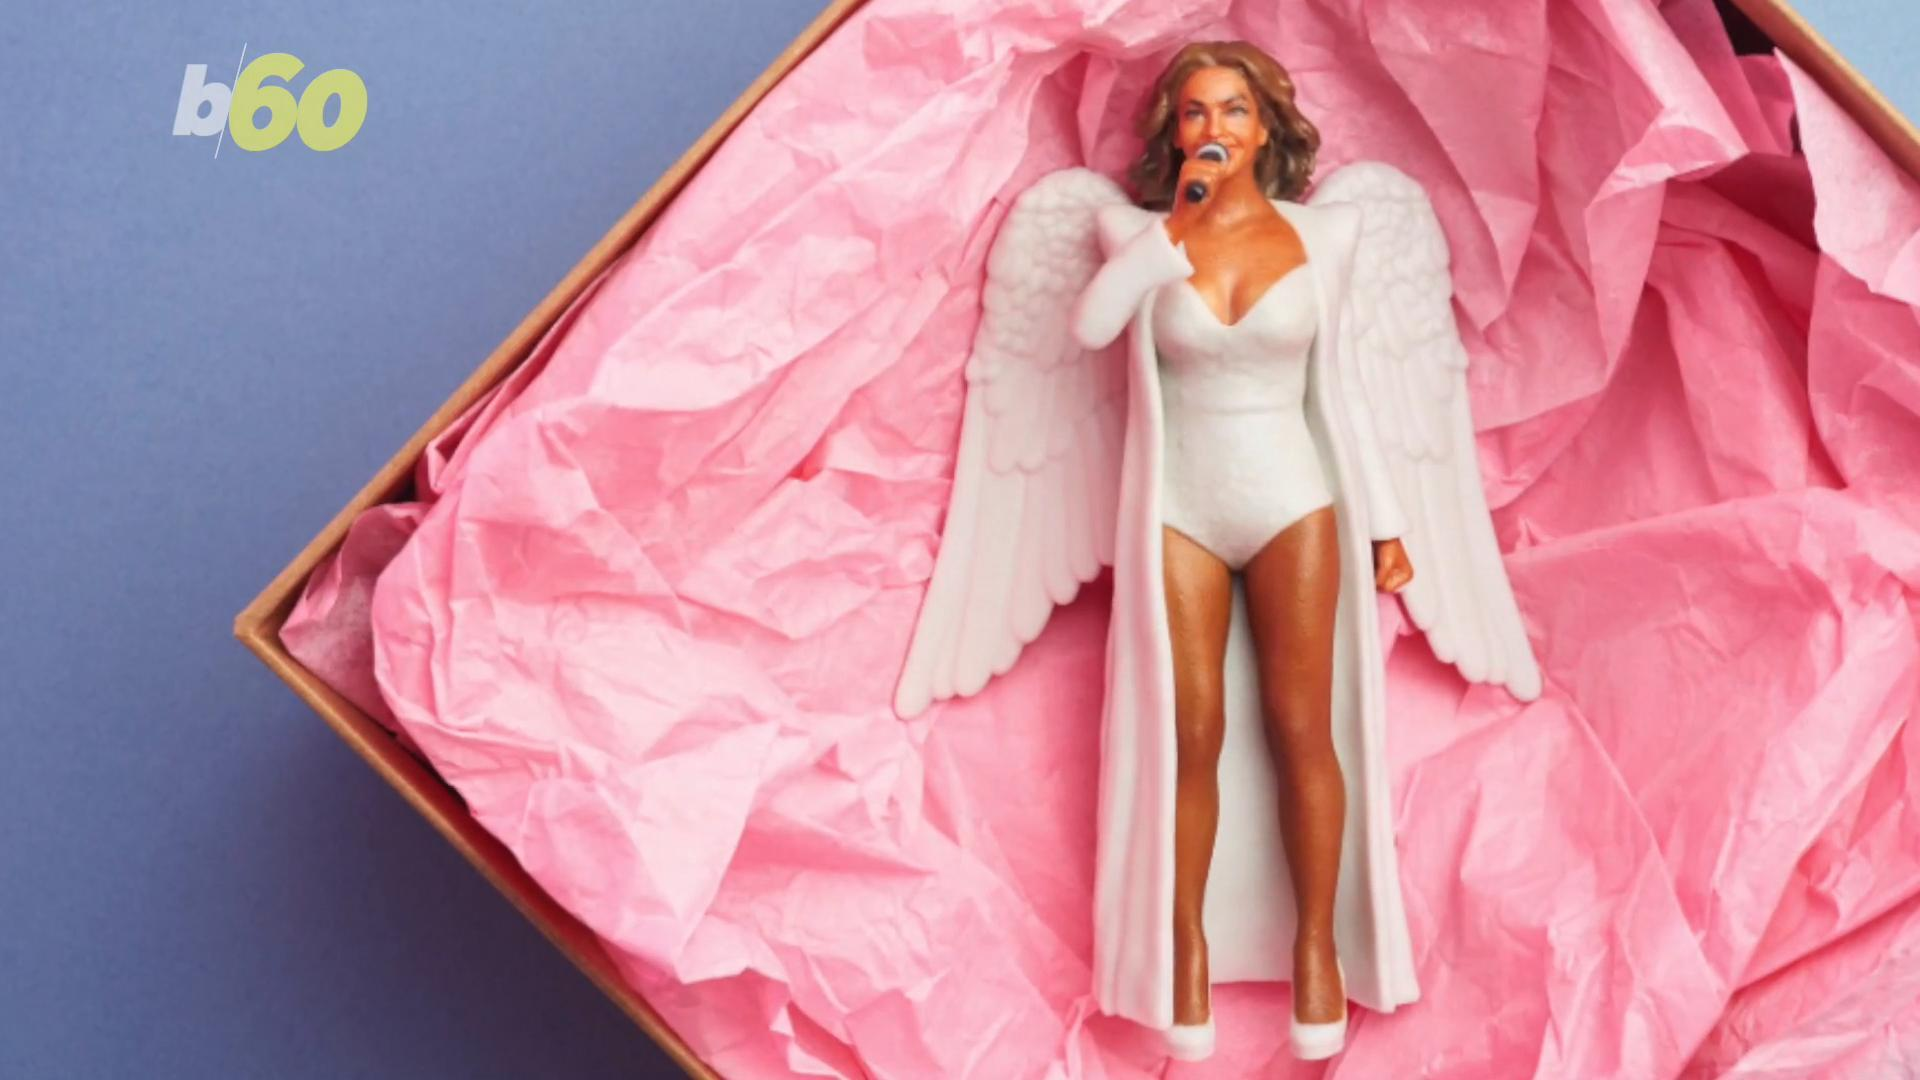 Now There's A Christmas Tree Topper For The Feminist In Every Family